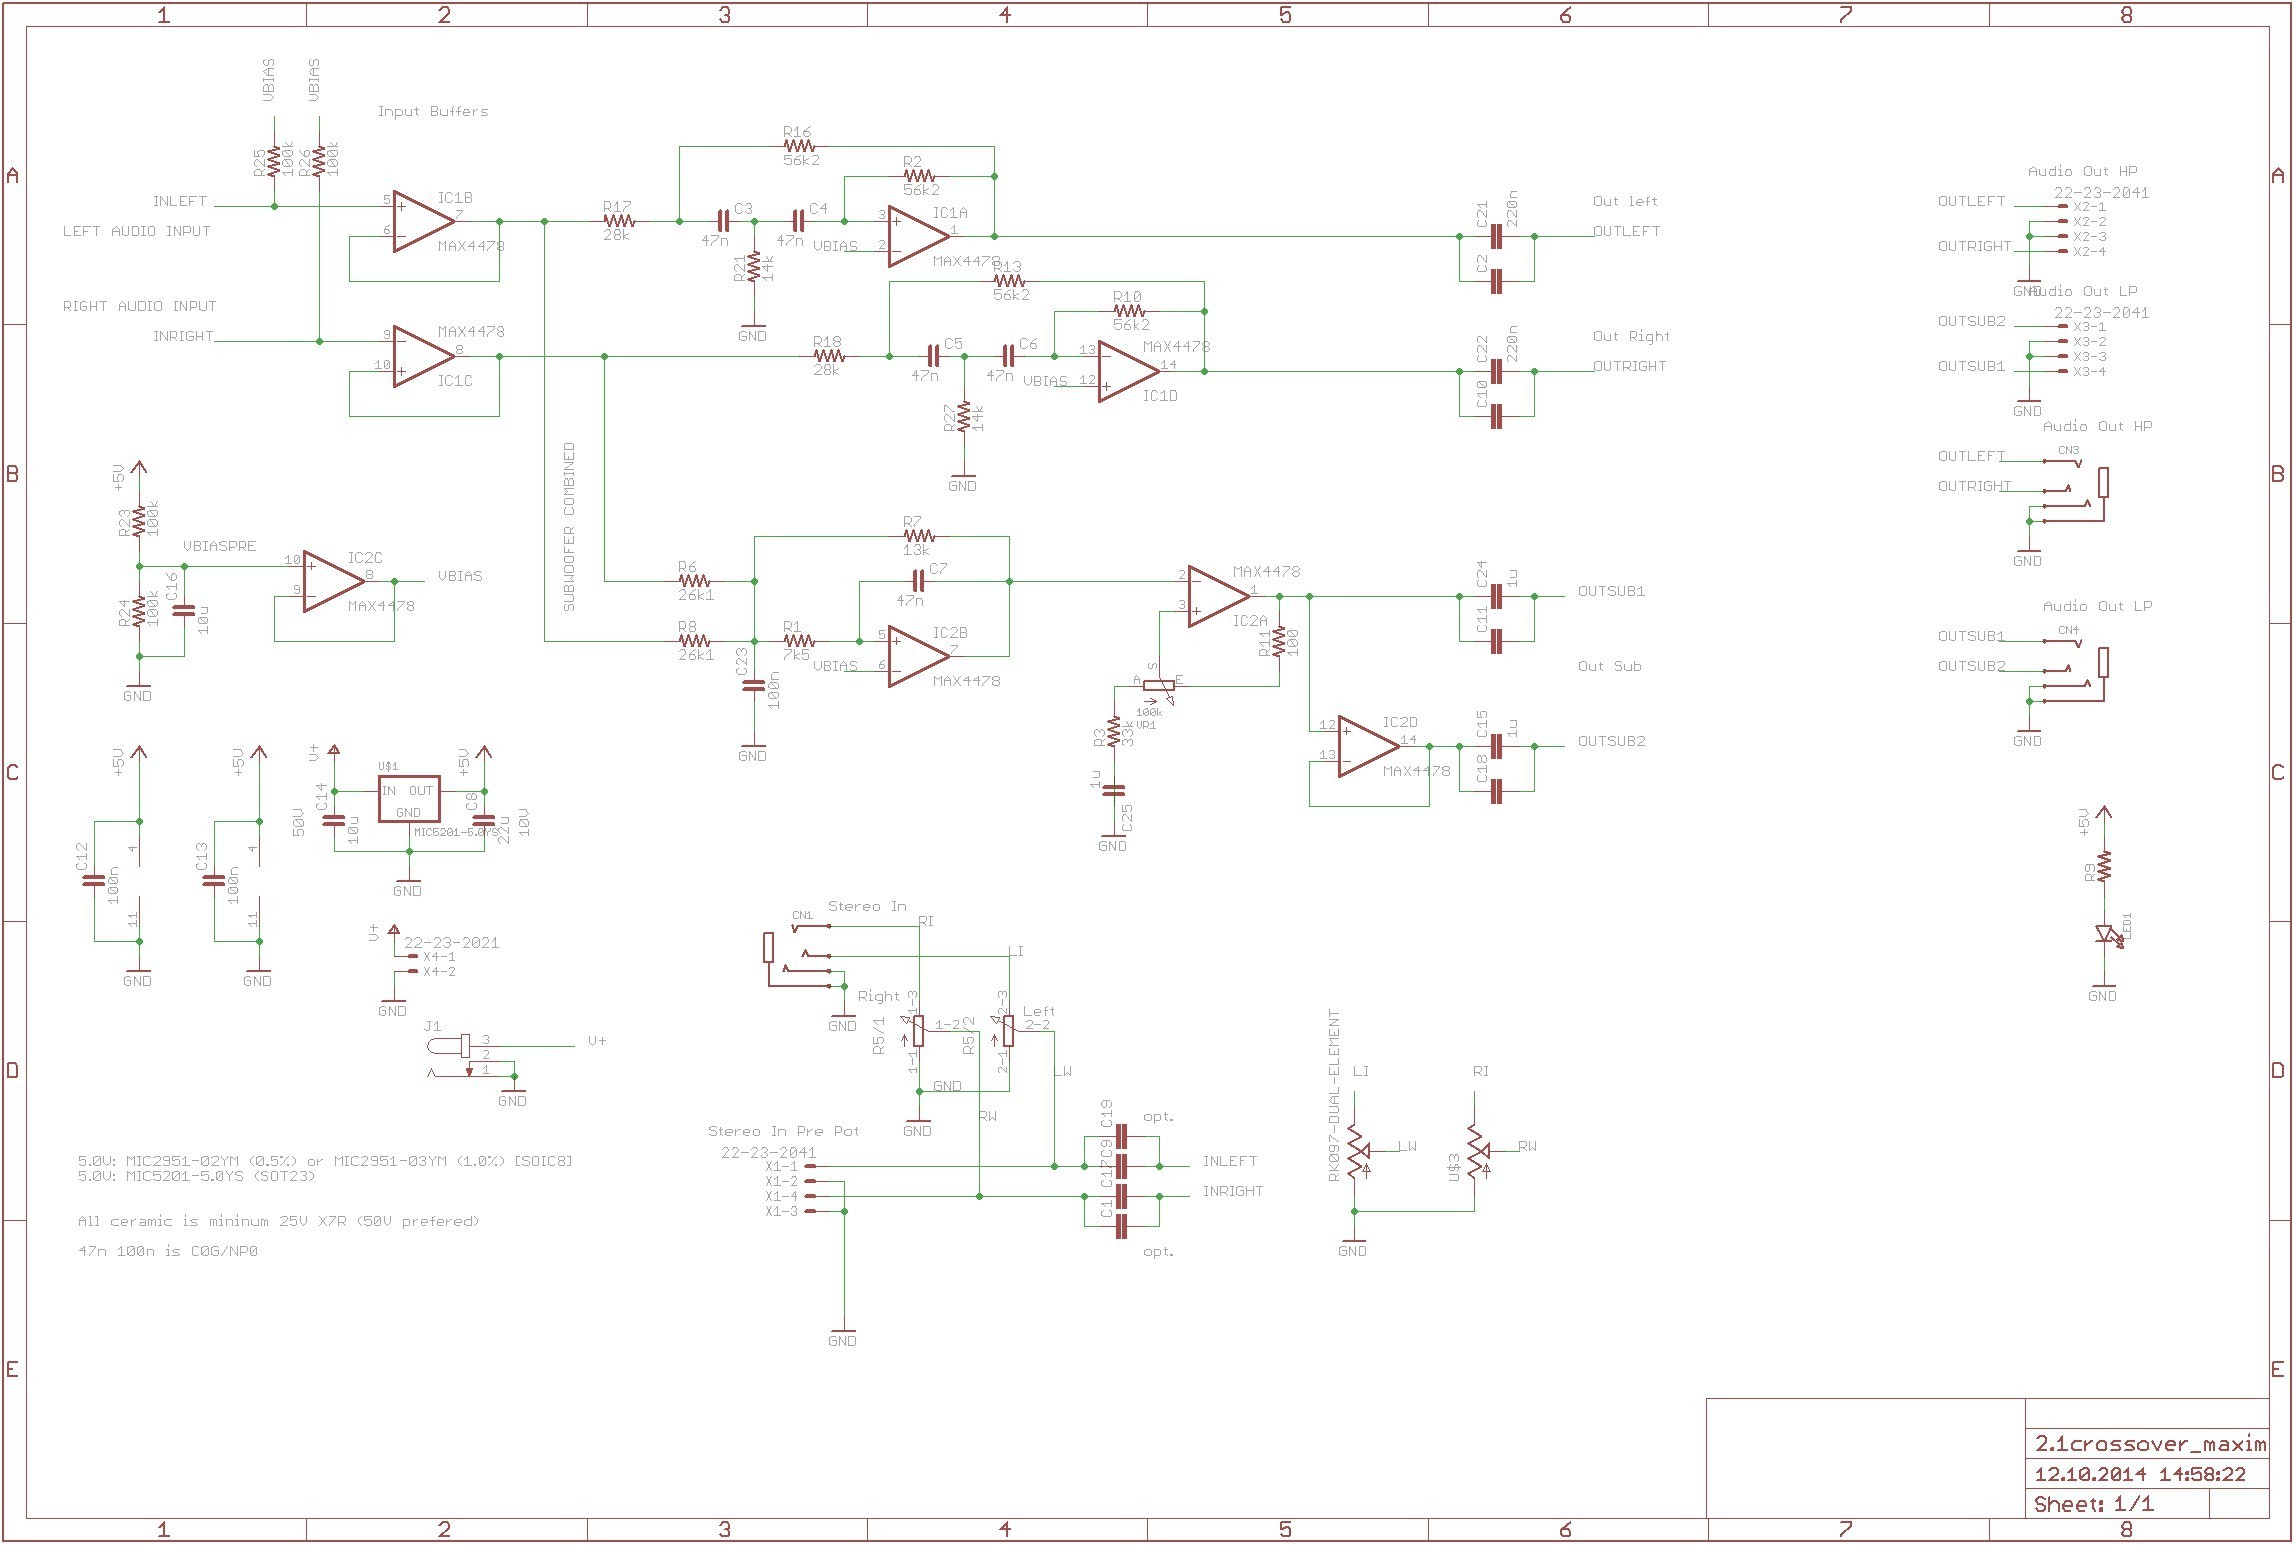 Wiring diagram for house lighting circuit new standard wiring house of wiring diagram related post asfbconference2016 Images